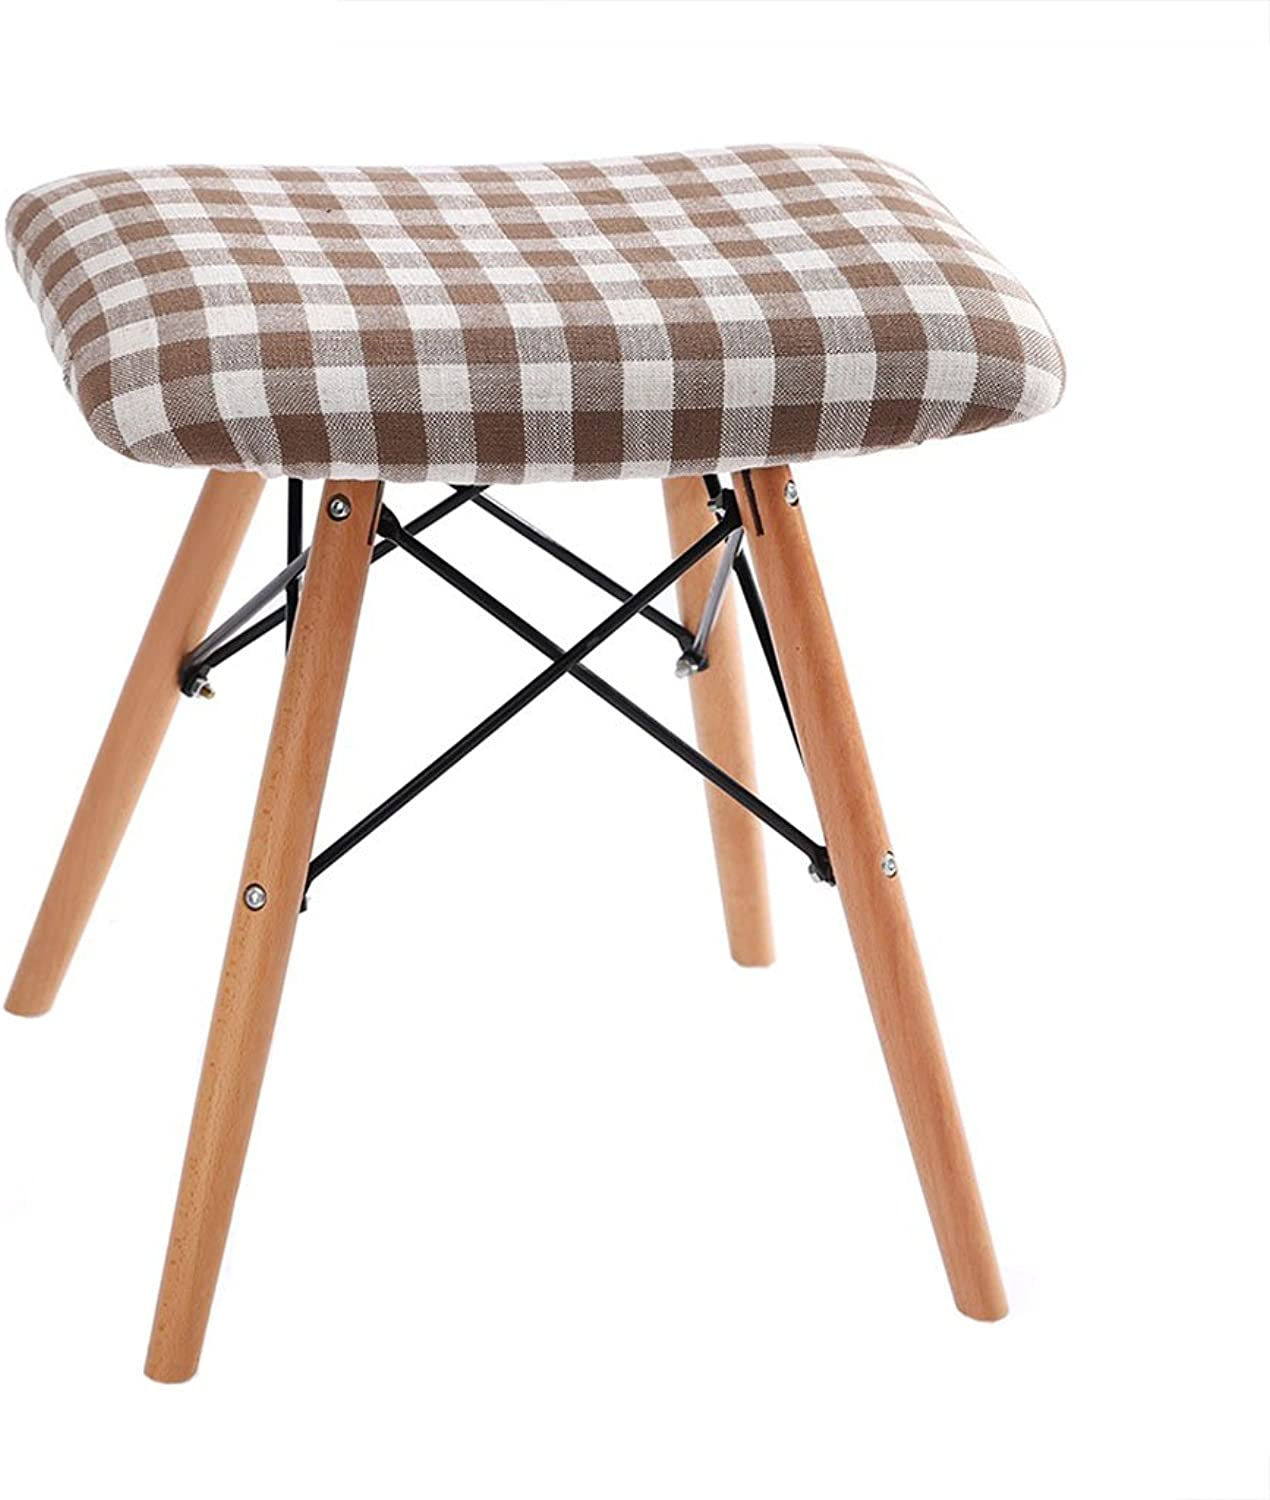 HQCC LRZLZY Solid Wood Makeup Stool Fashion Creative Computer Stool